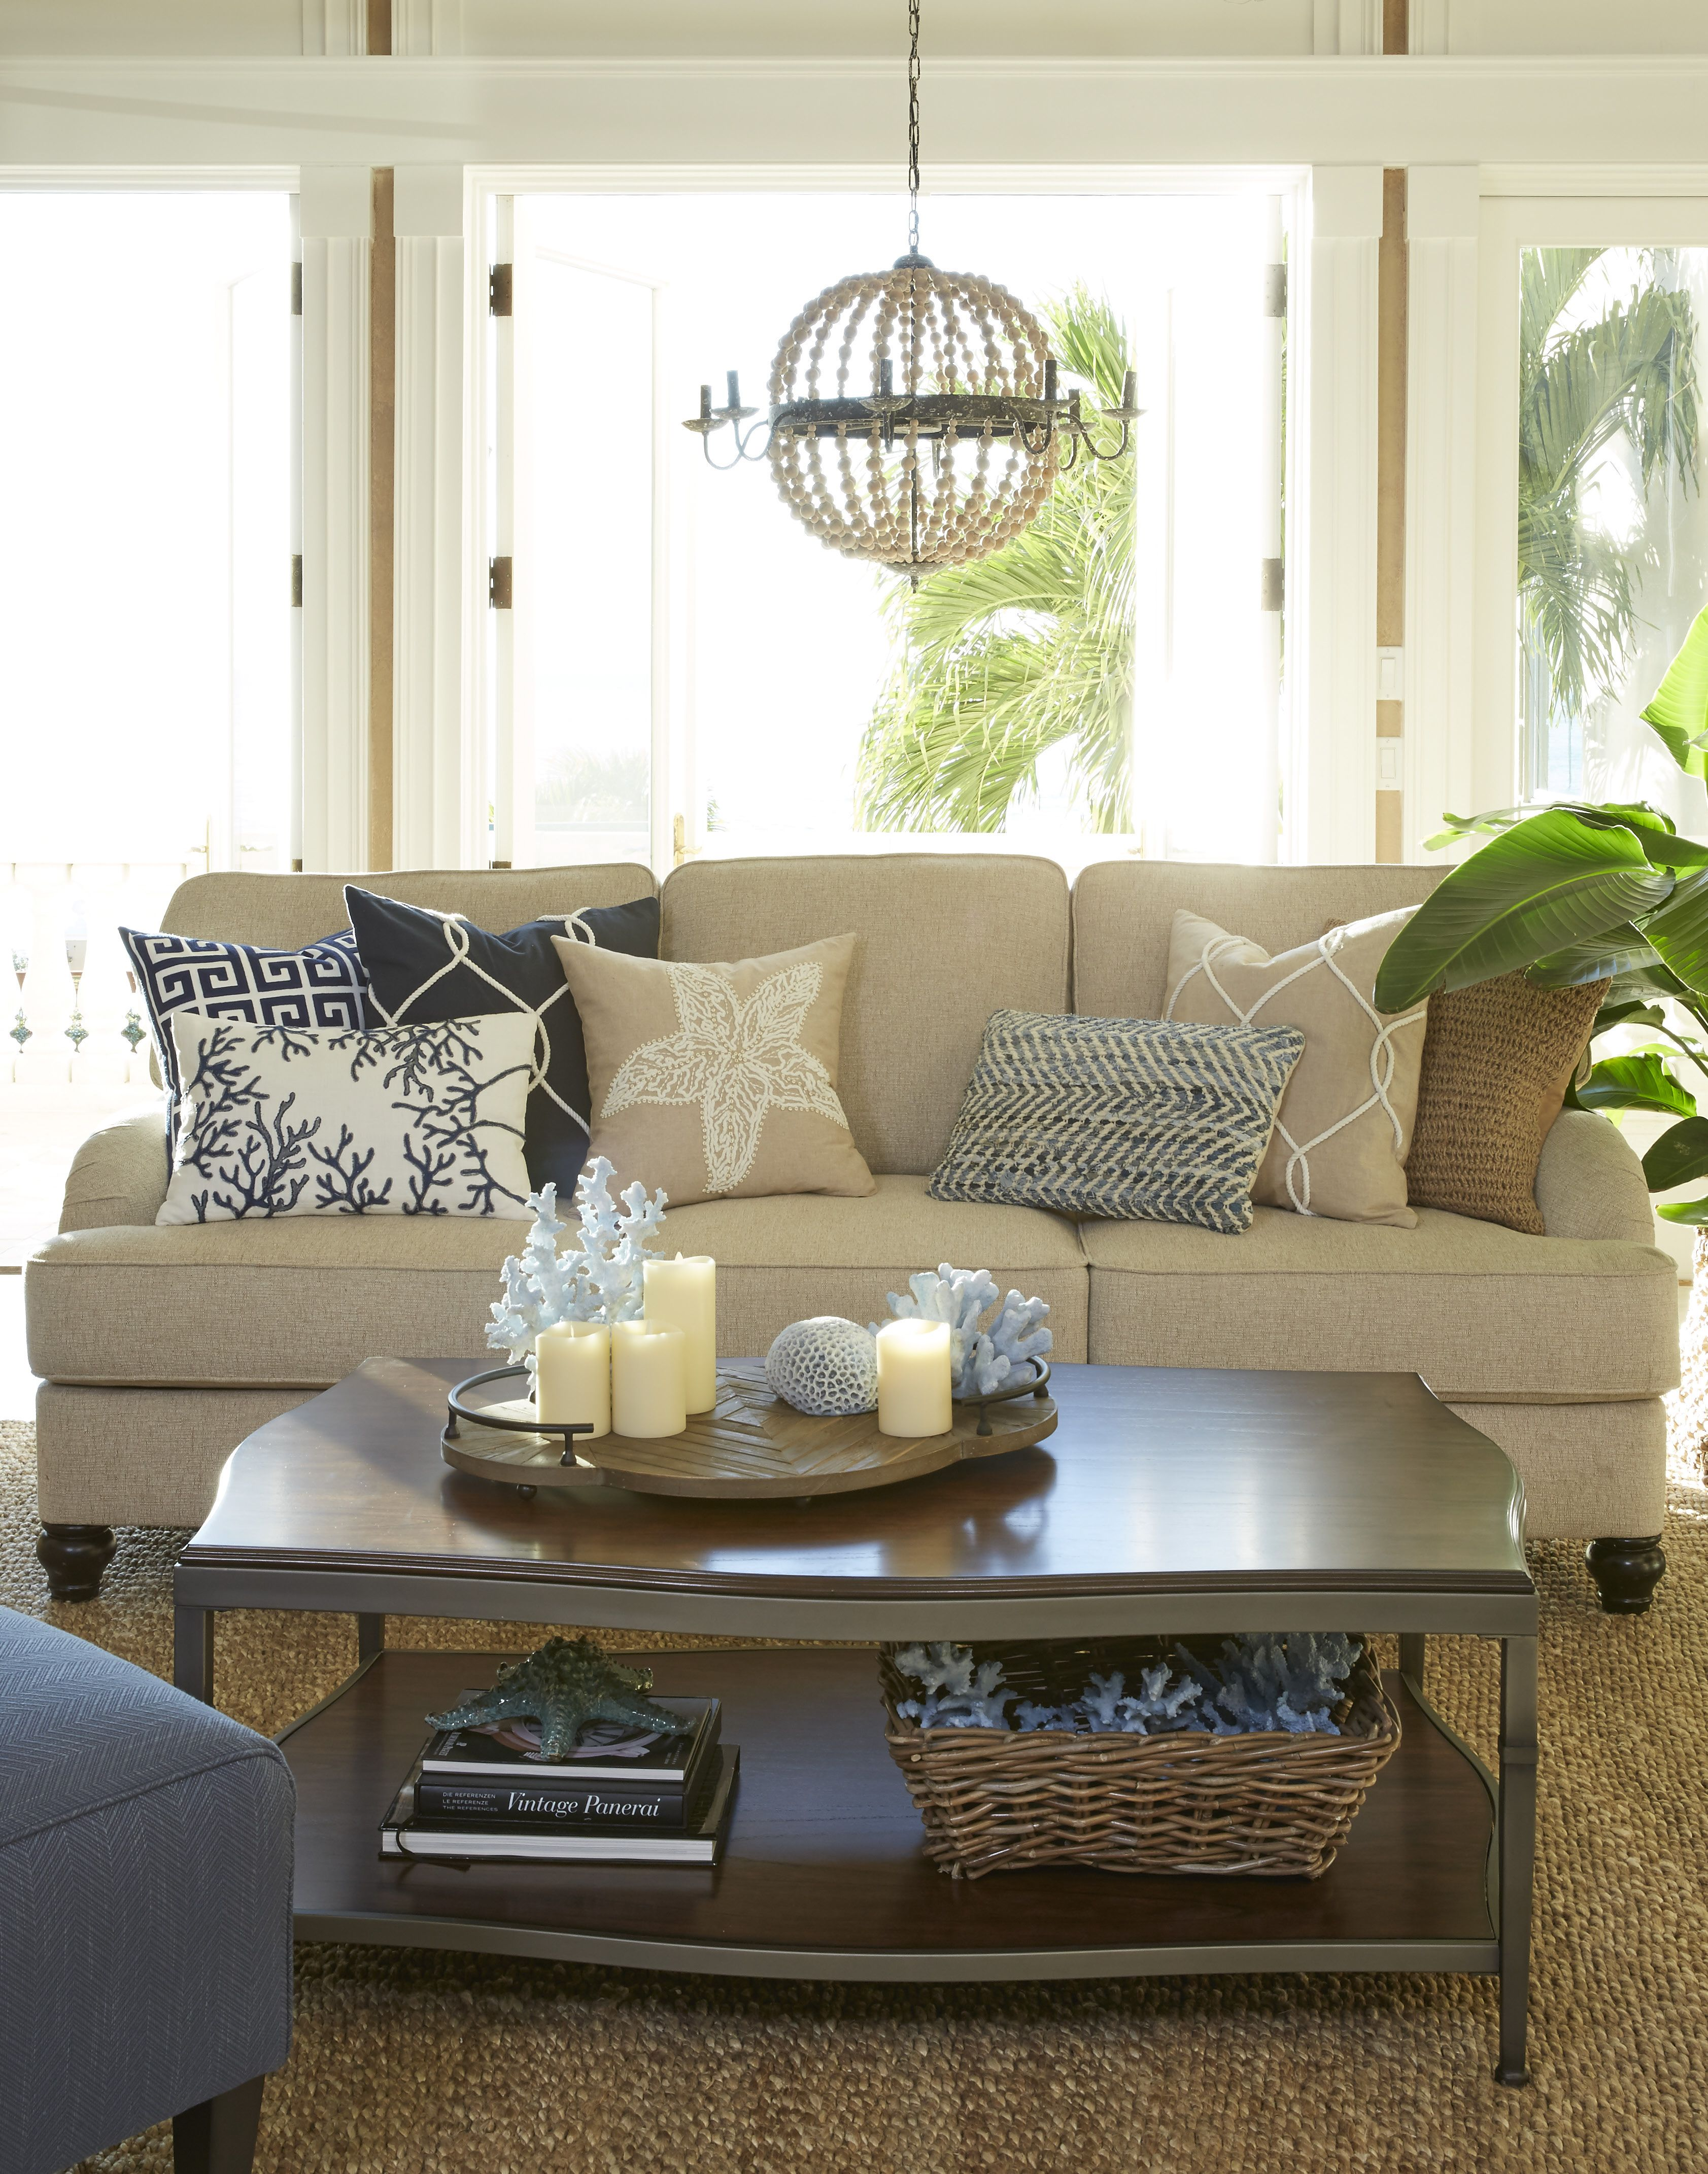 Ordinaire This Neutral Sofa Is Perfect Paired With Blues And Other Neutrals For A  Beachy Vibe!